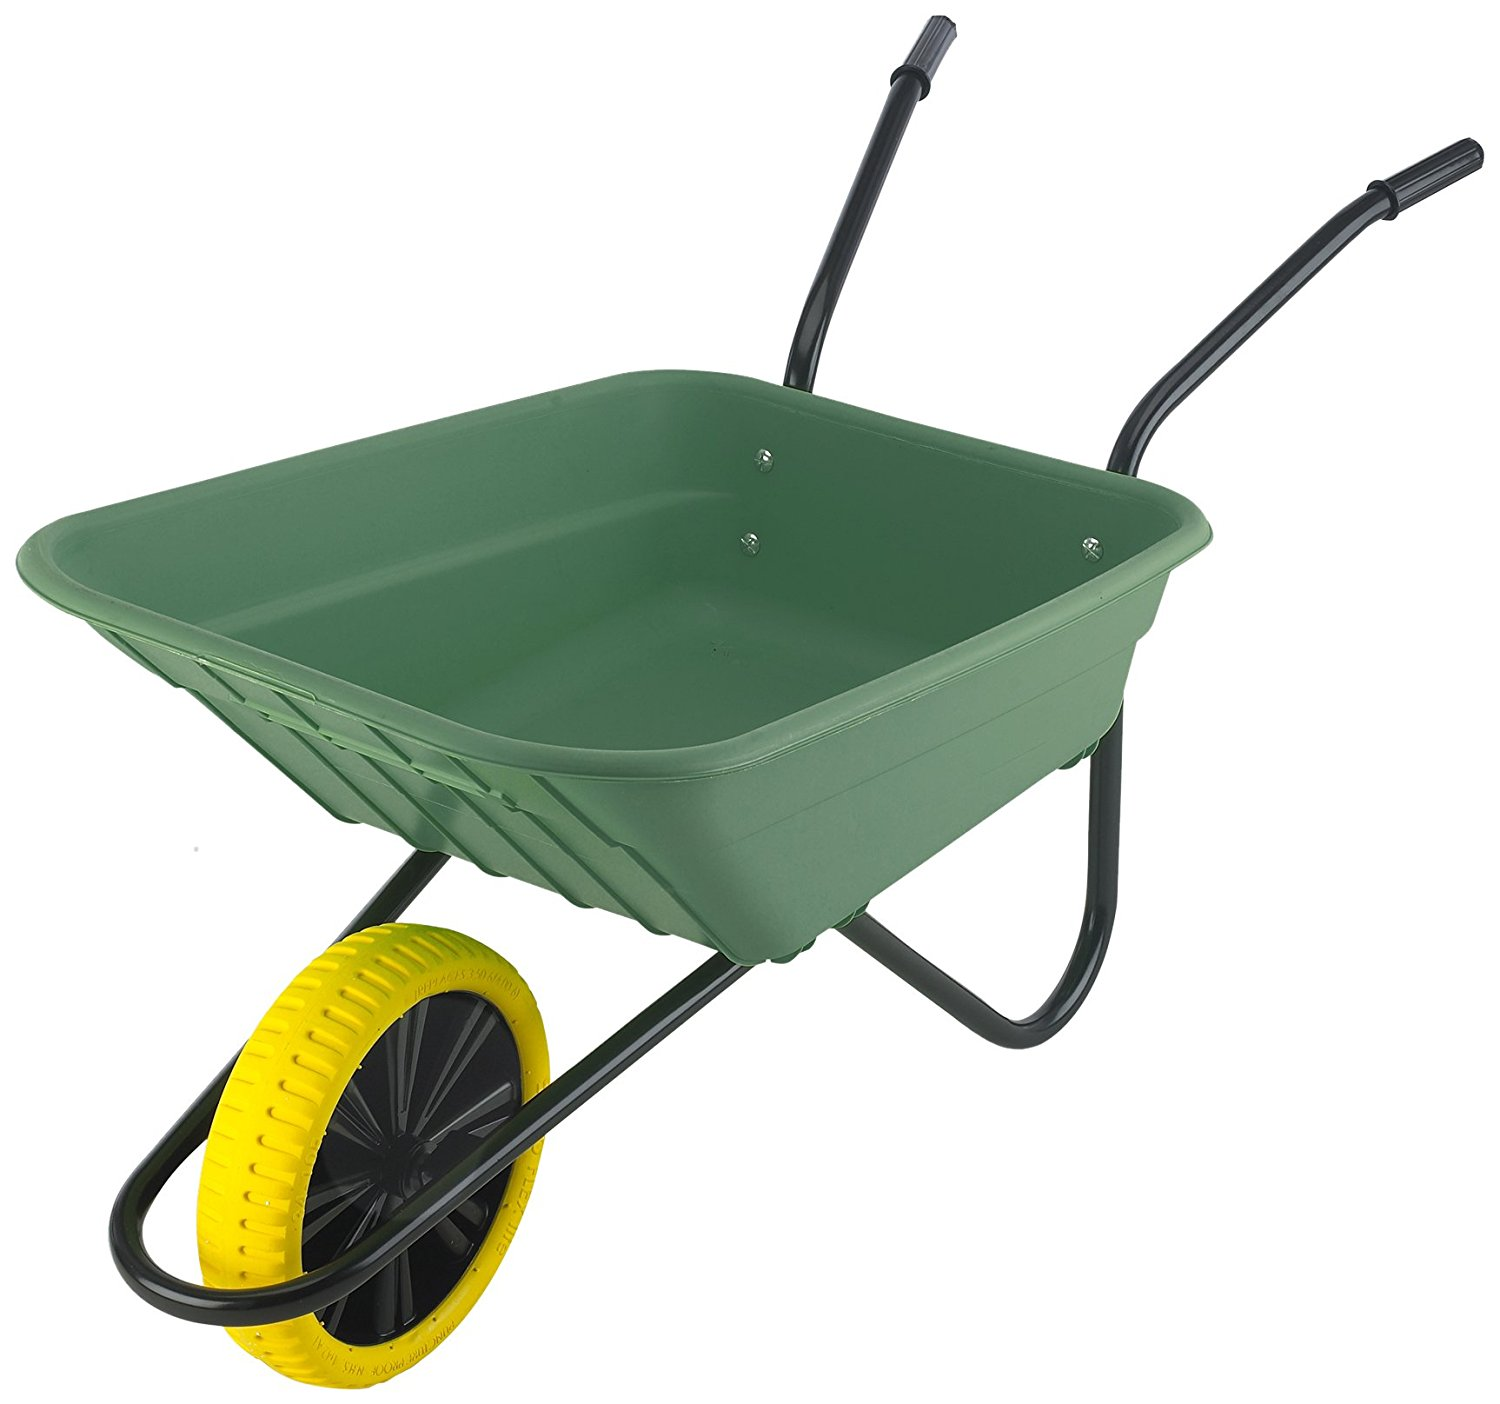 Wheelbarrow photo